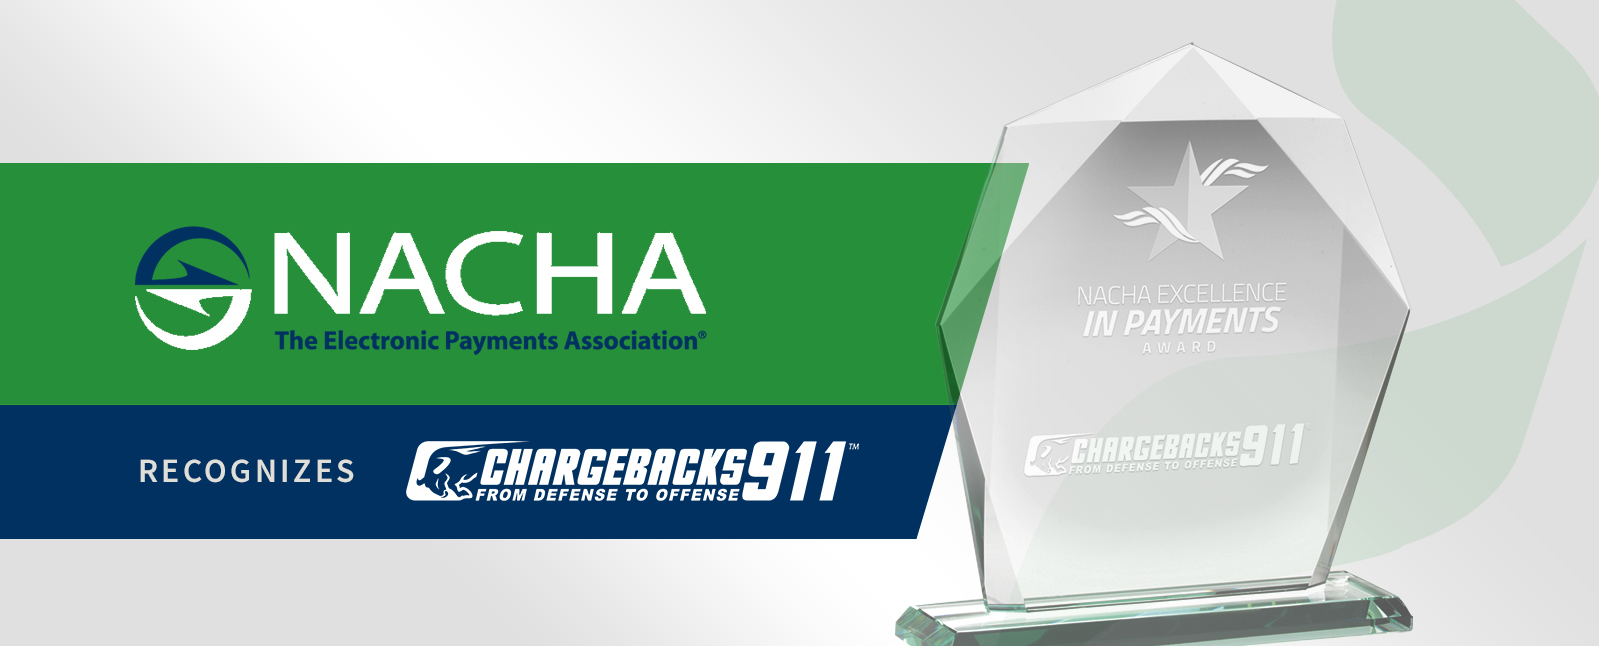 Chargebacks911 a Finalist for Major Payments Industry Award